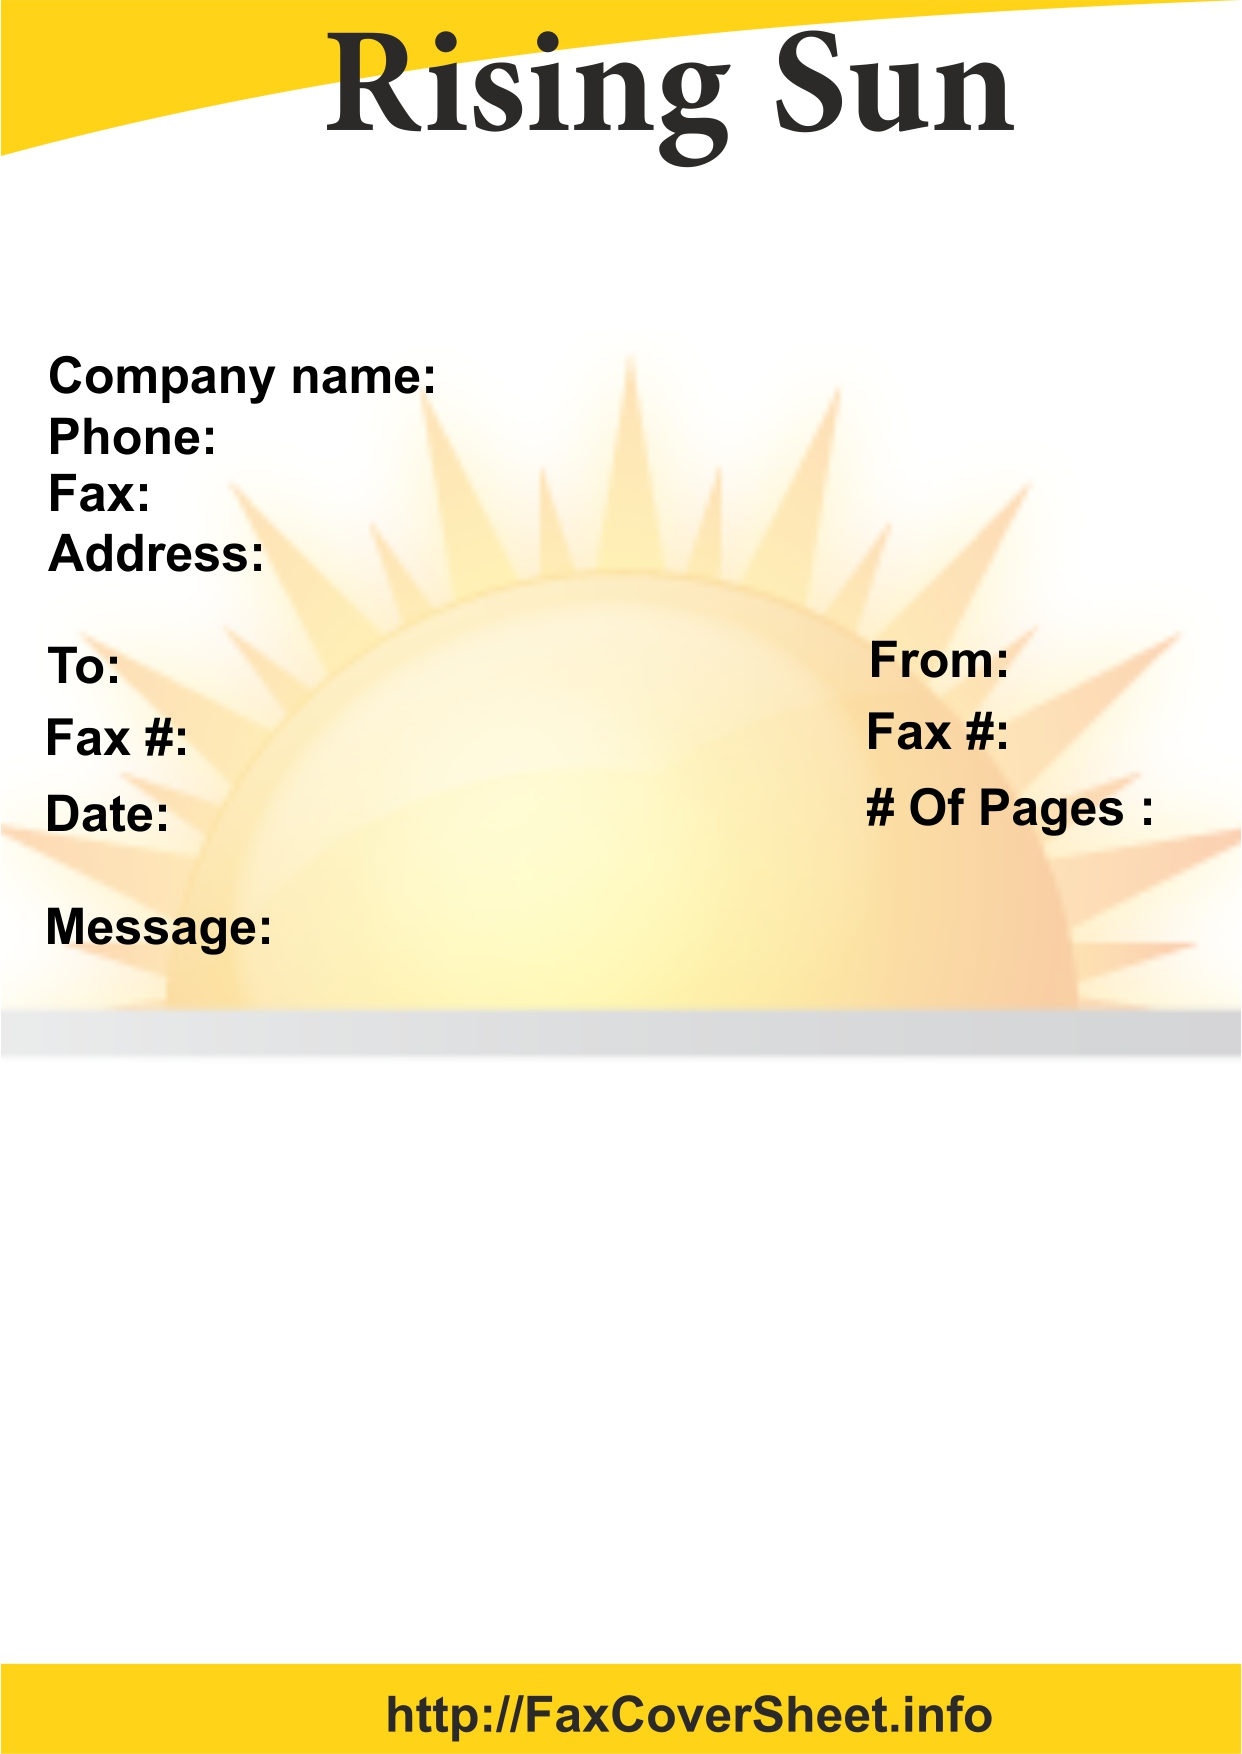 SUN RISING FAX COVER SHEET